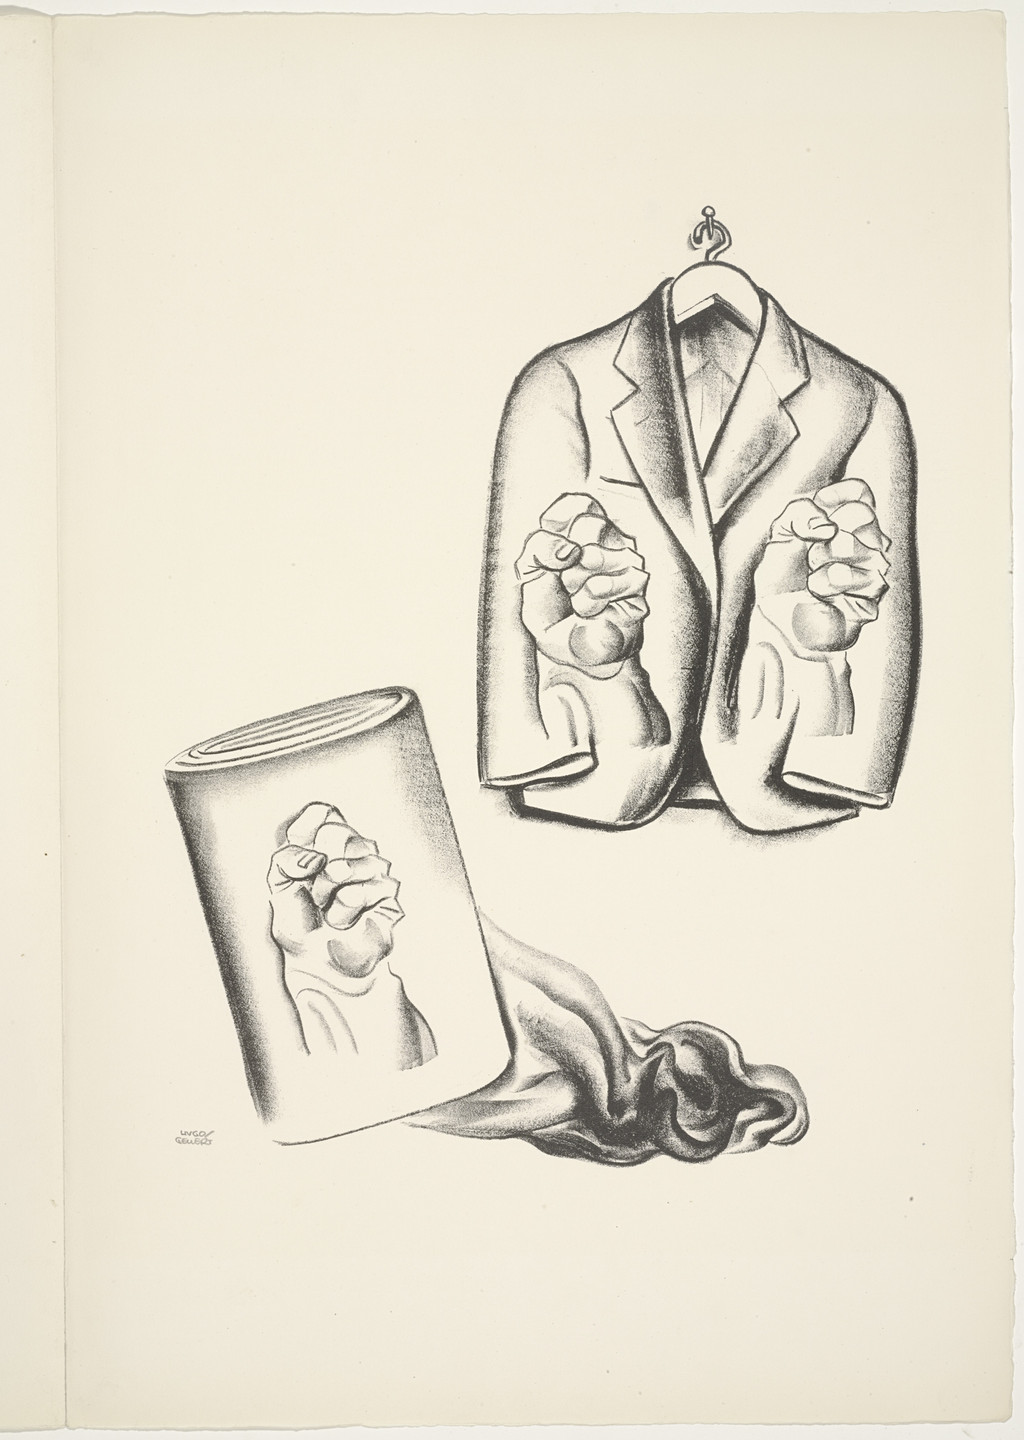 Hugo Gellert. Plate (folio 52) from 'Capital' in Pictures. 1933